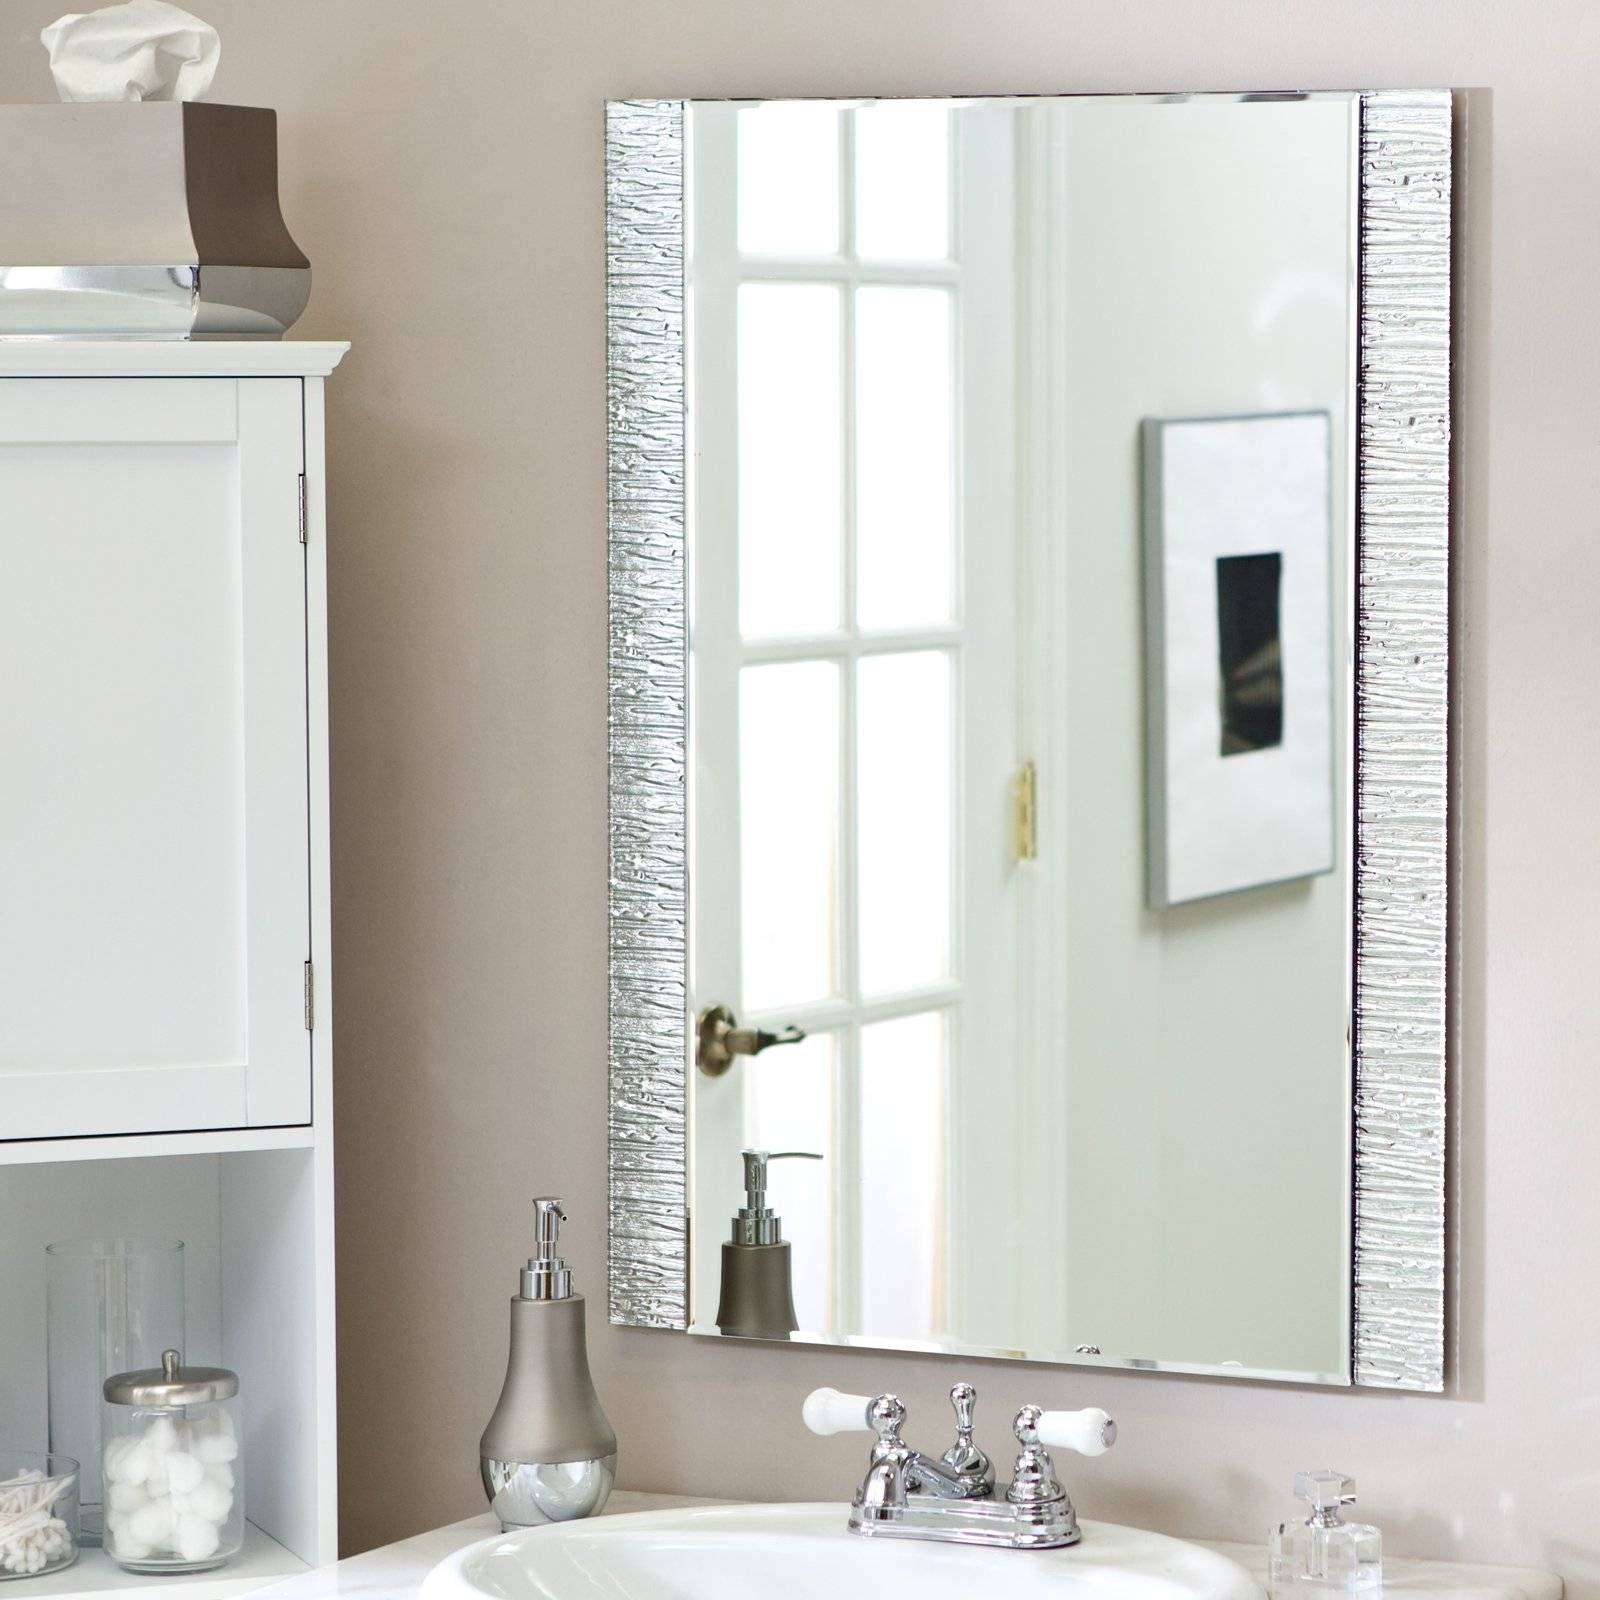 Wall Mirrors regarding Unframed Wall Mirrors (Image 15 of 15)